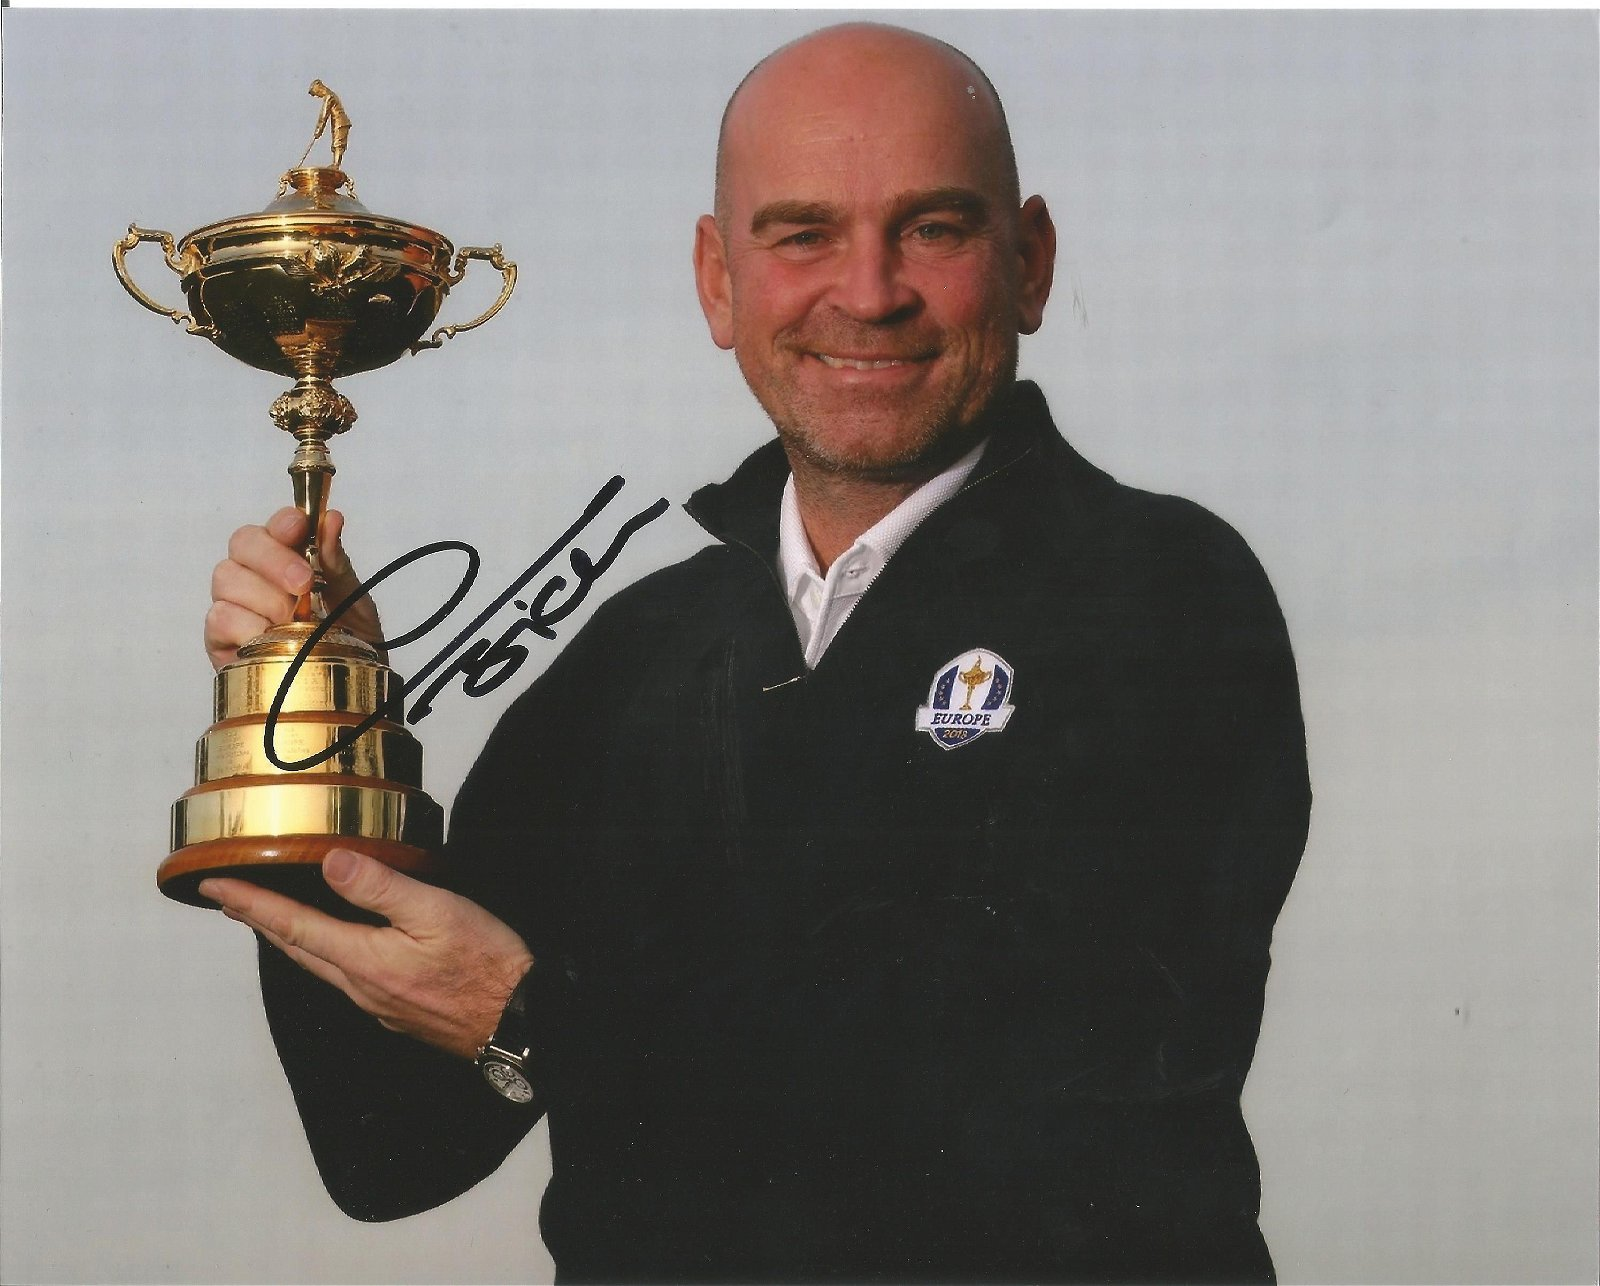 Thomas Bjorn Signed Ryder Cup Golf 8x10 Photo . Good